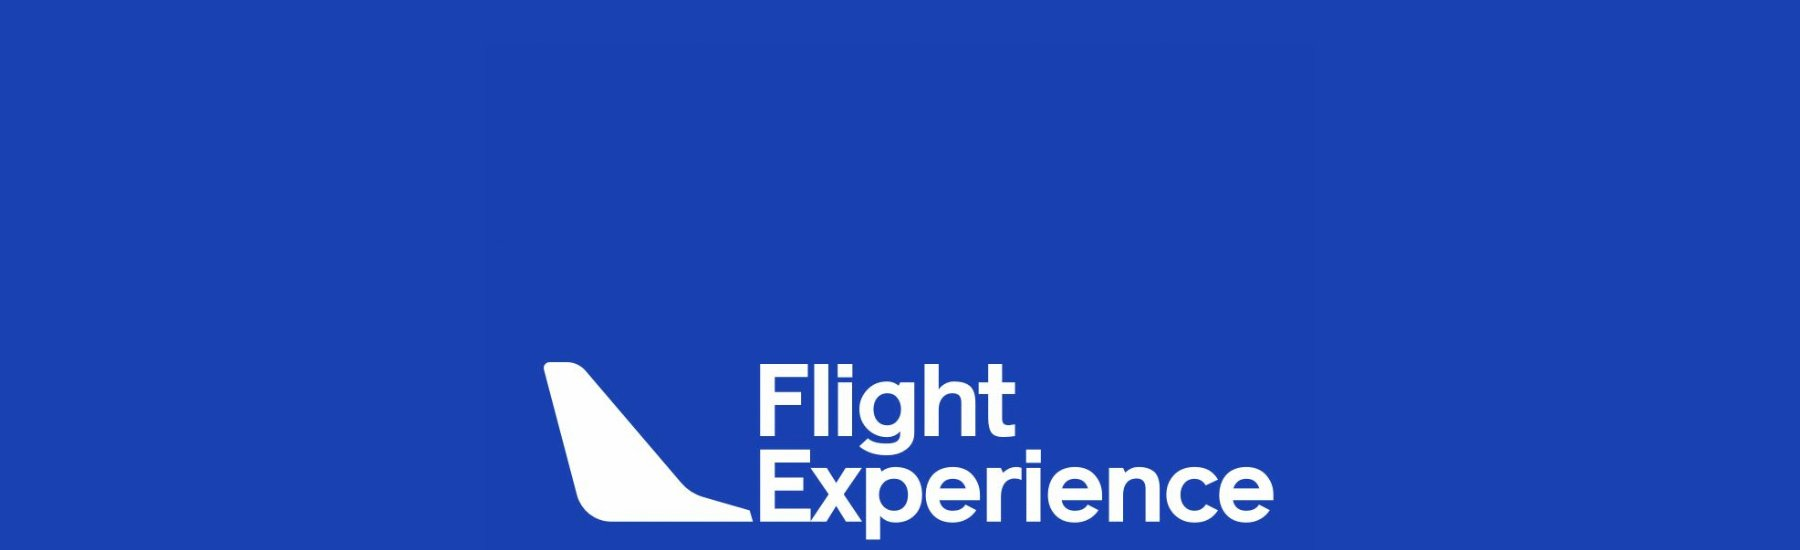 Flight Experience Launches New Branding